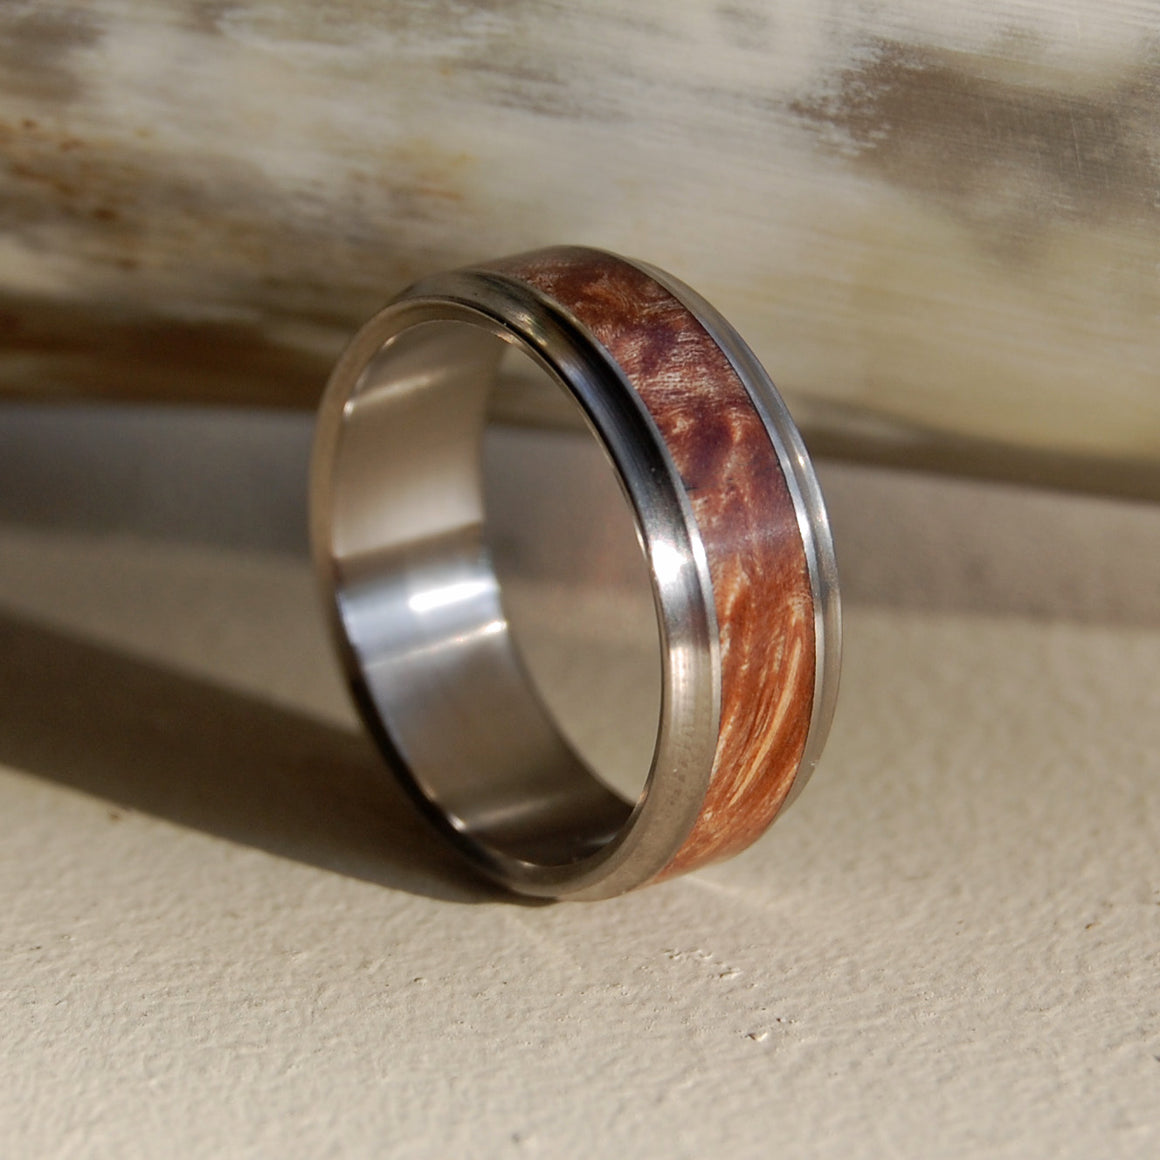 AMBOYNA WINDHAM | Handcrafted Wooden Wedding Rings - Minter and Richter Designs